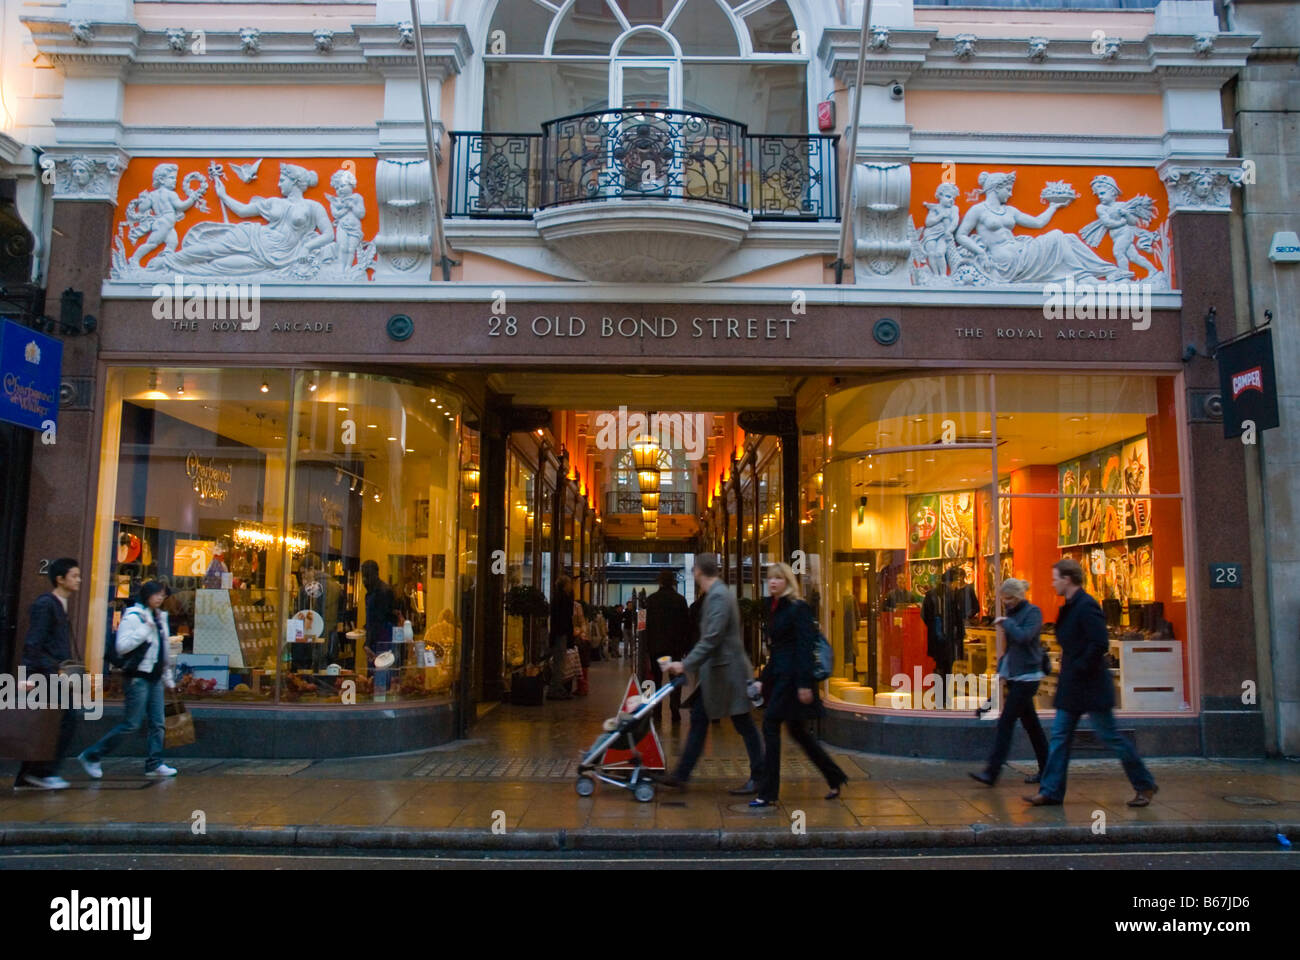 The Royal Arcade shopping centre along Old Bond Street in district of Mayfair in central London England UK - Stock Image